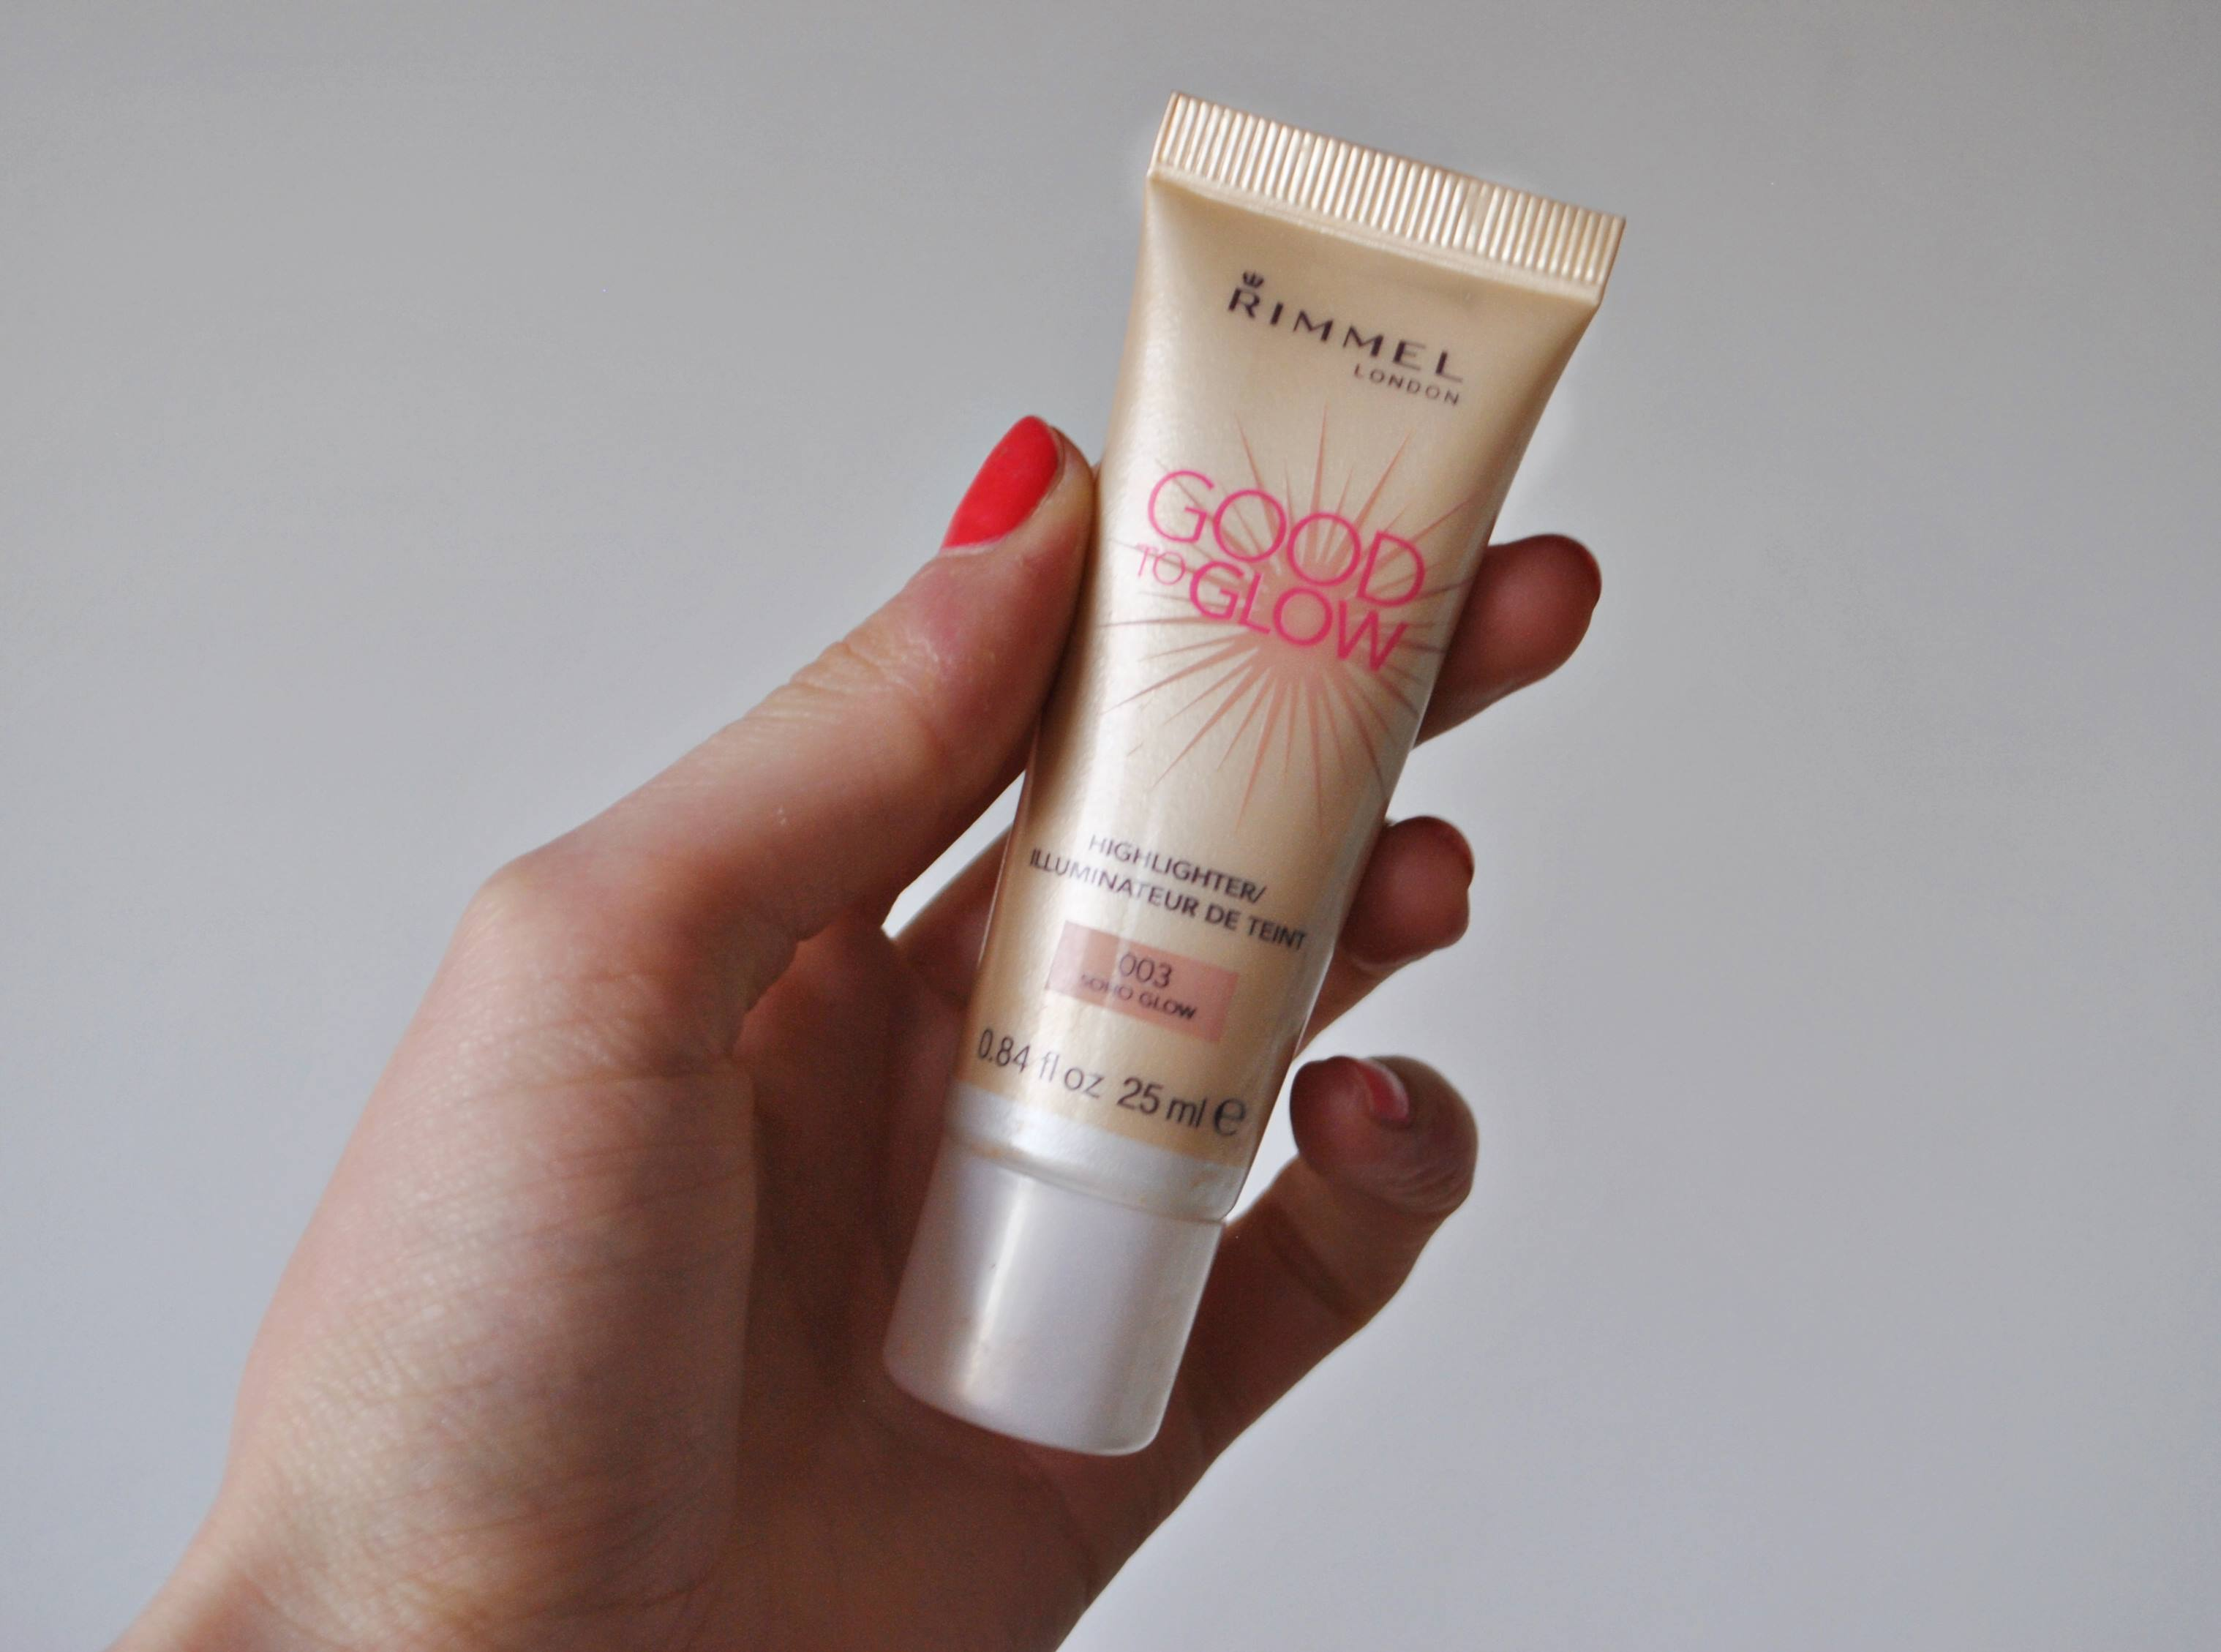 good to glow rimmel review